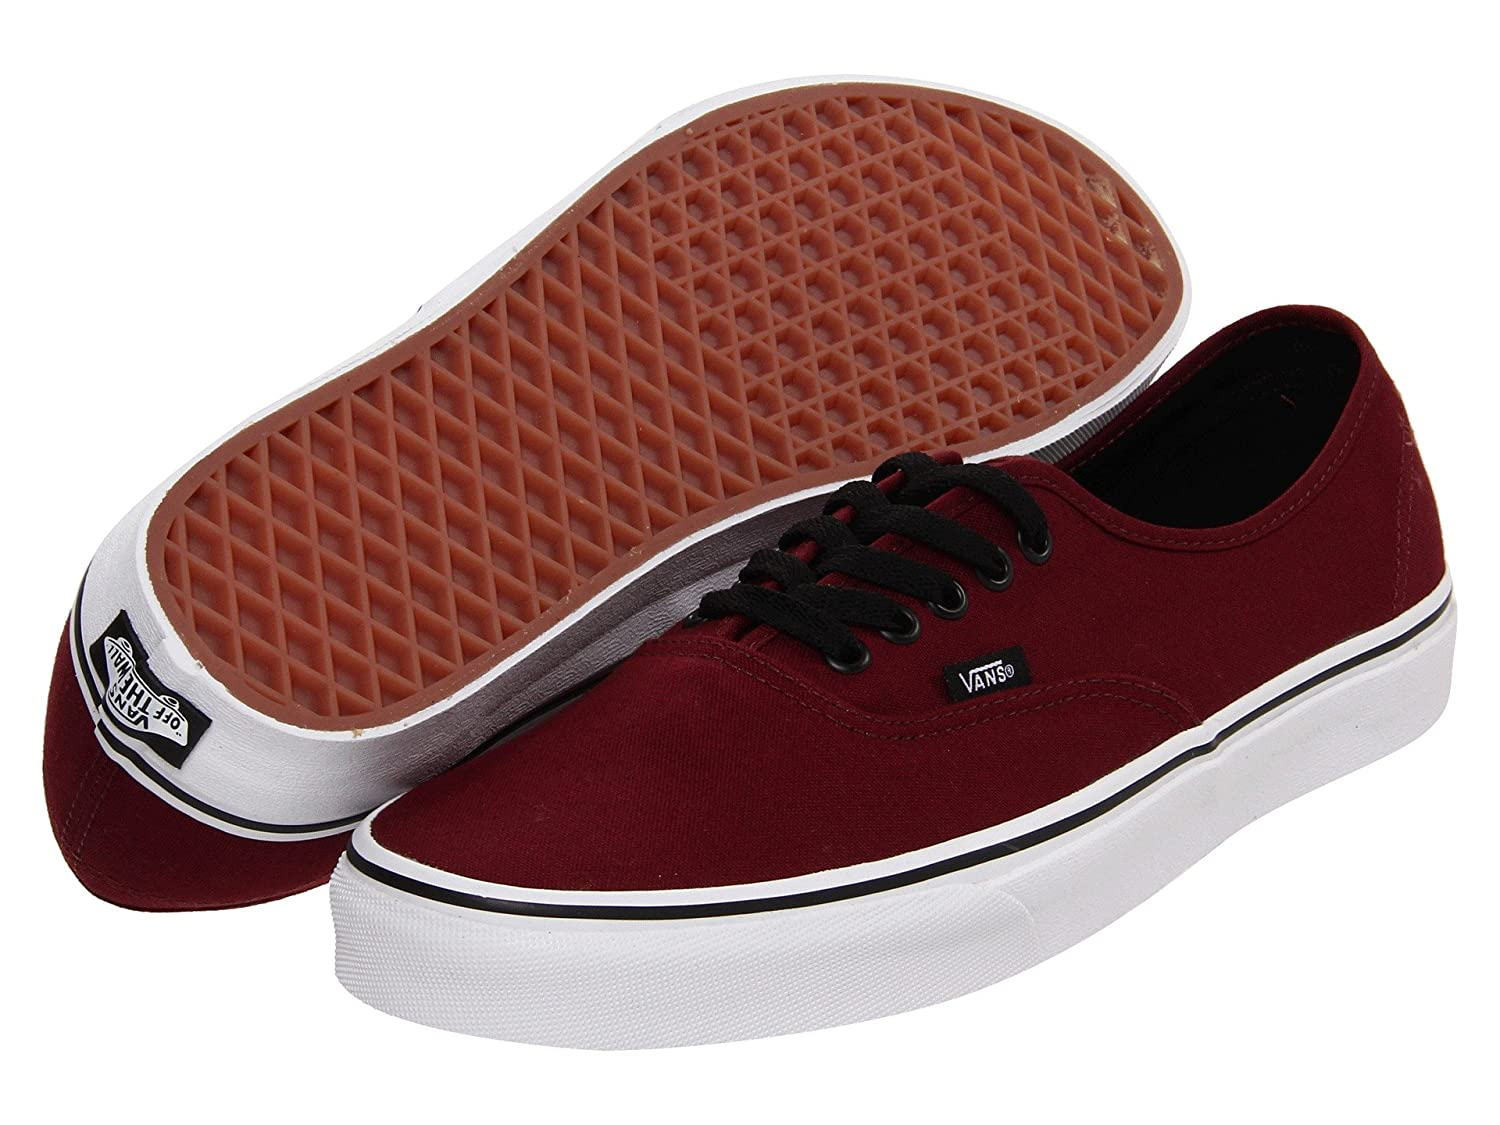 Vans Unisex Authentic Canvas Shoes B0771RSHSX 7 D(M) US|Port Royale/Black